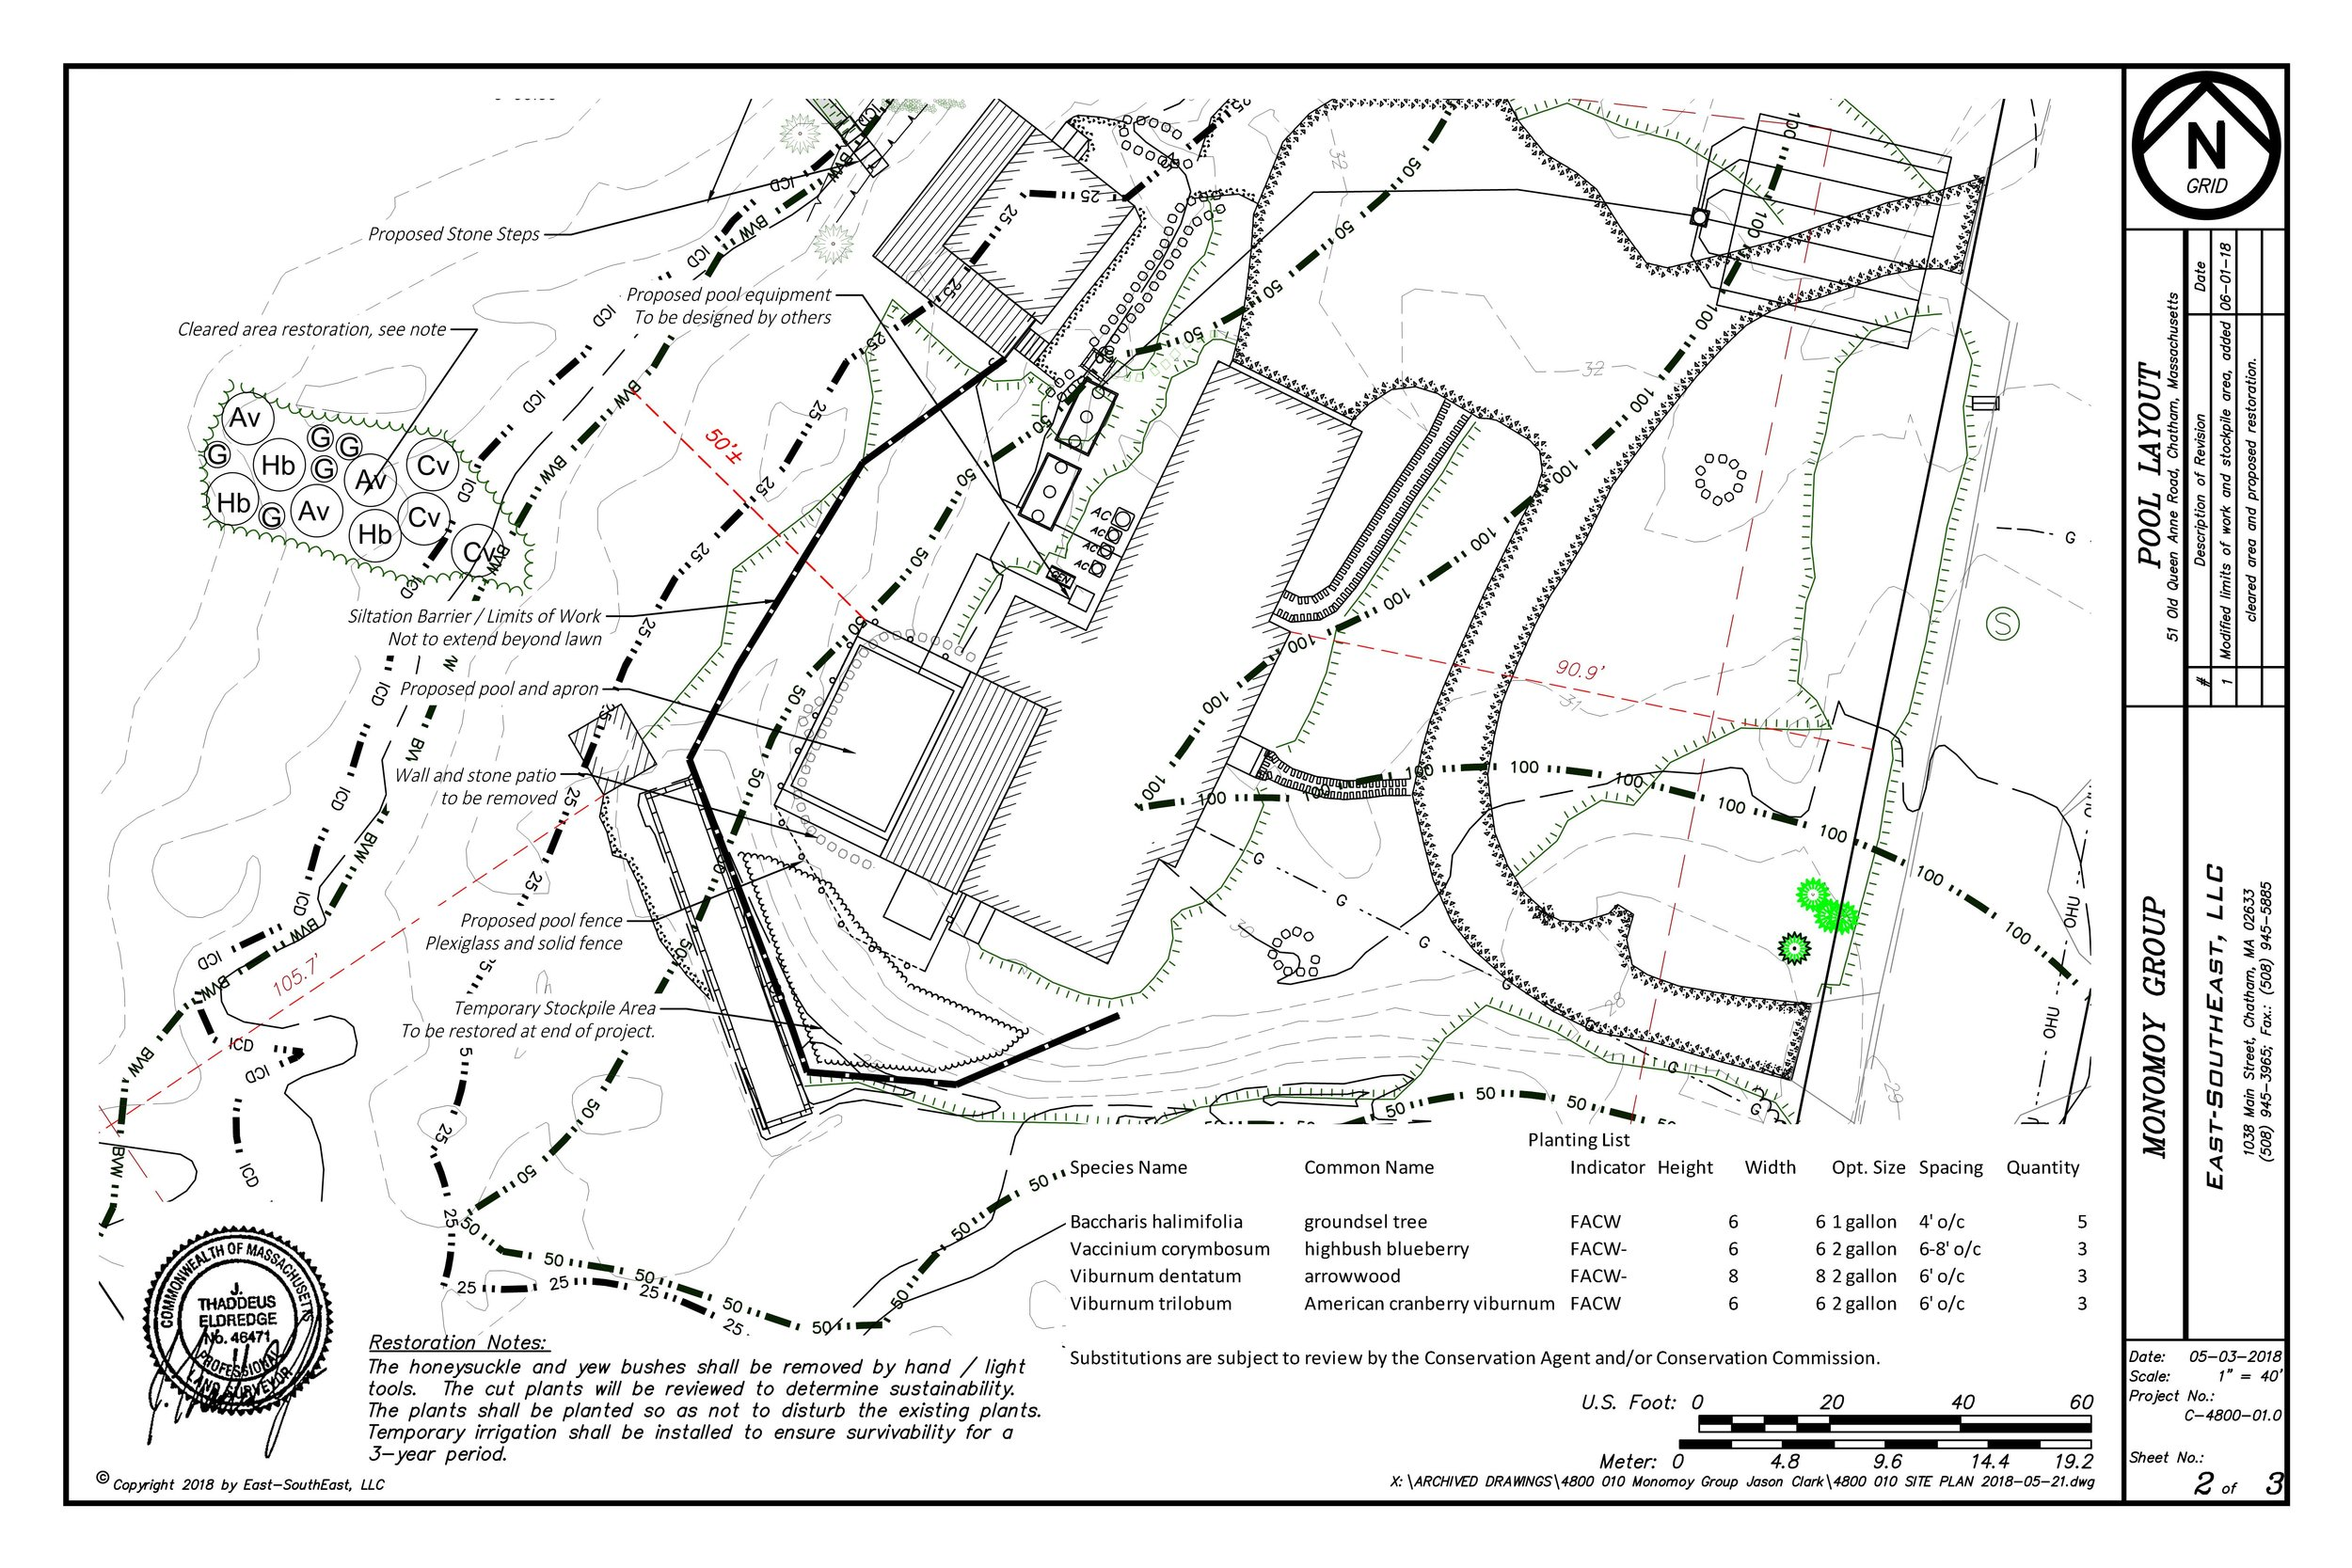 4800 010 SITE PLAN 2018-06-03 UPDATED FINAL Page 002.jpg